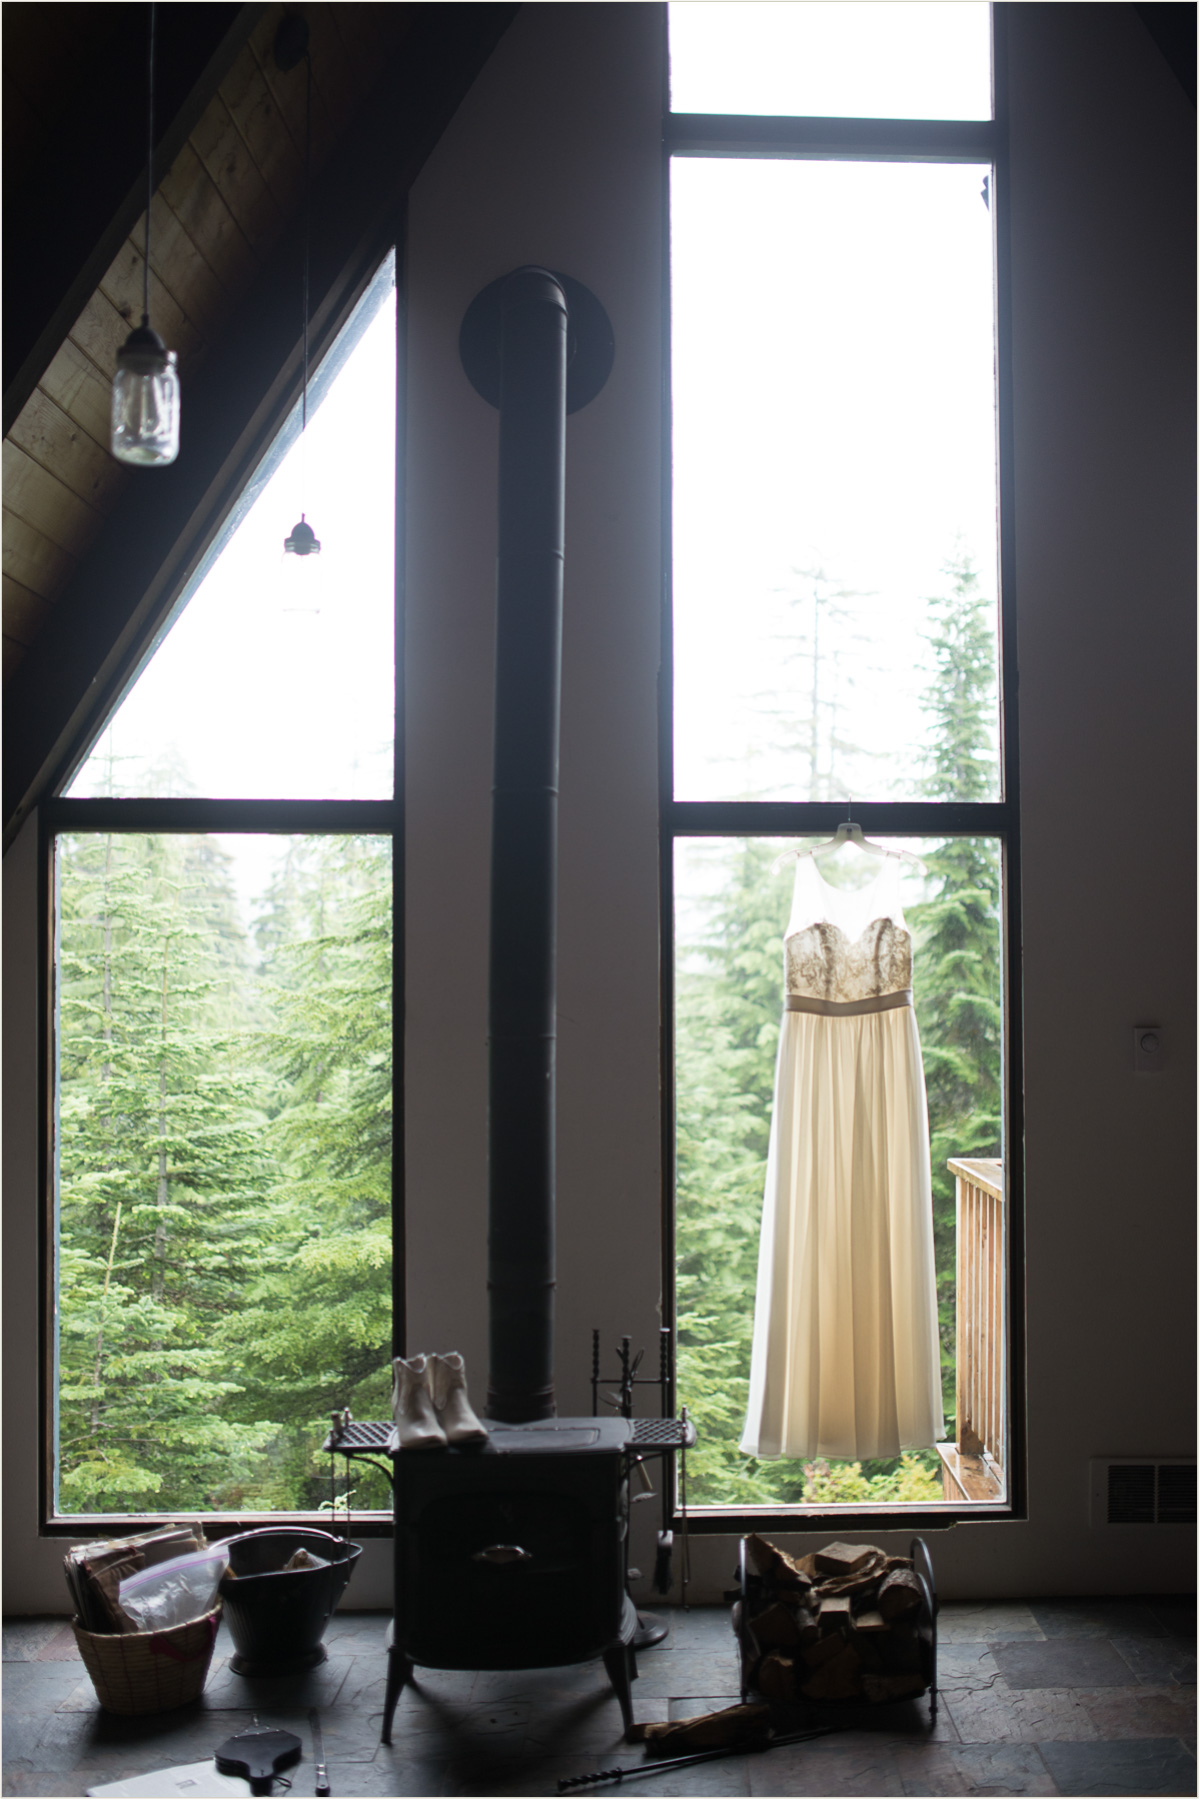 Wedding Dress Hanging in Window of Cabin